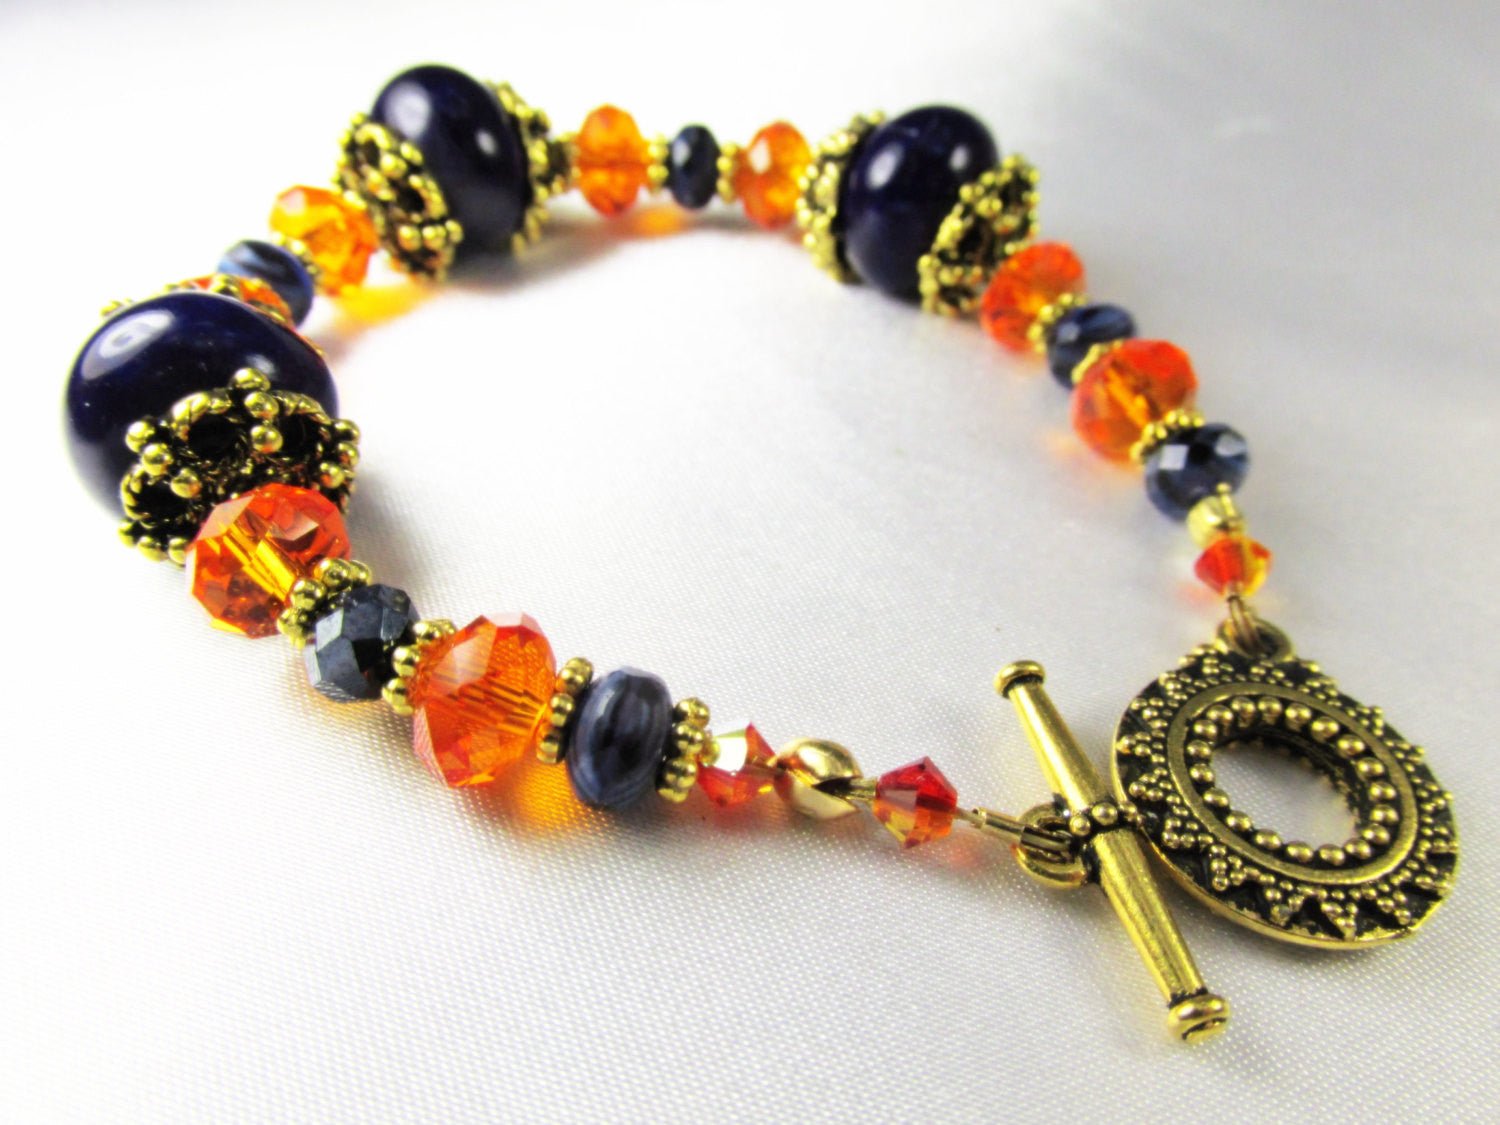 Orange and Blue Bracelet iwith gold sun toggle clasp, faceted dark blue Sodalite semiprecious stones and orange crystals - Odyssey Creations